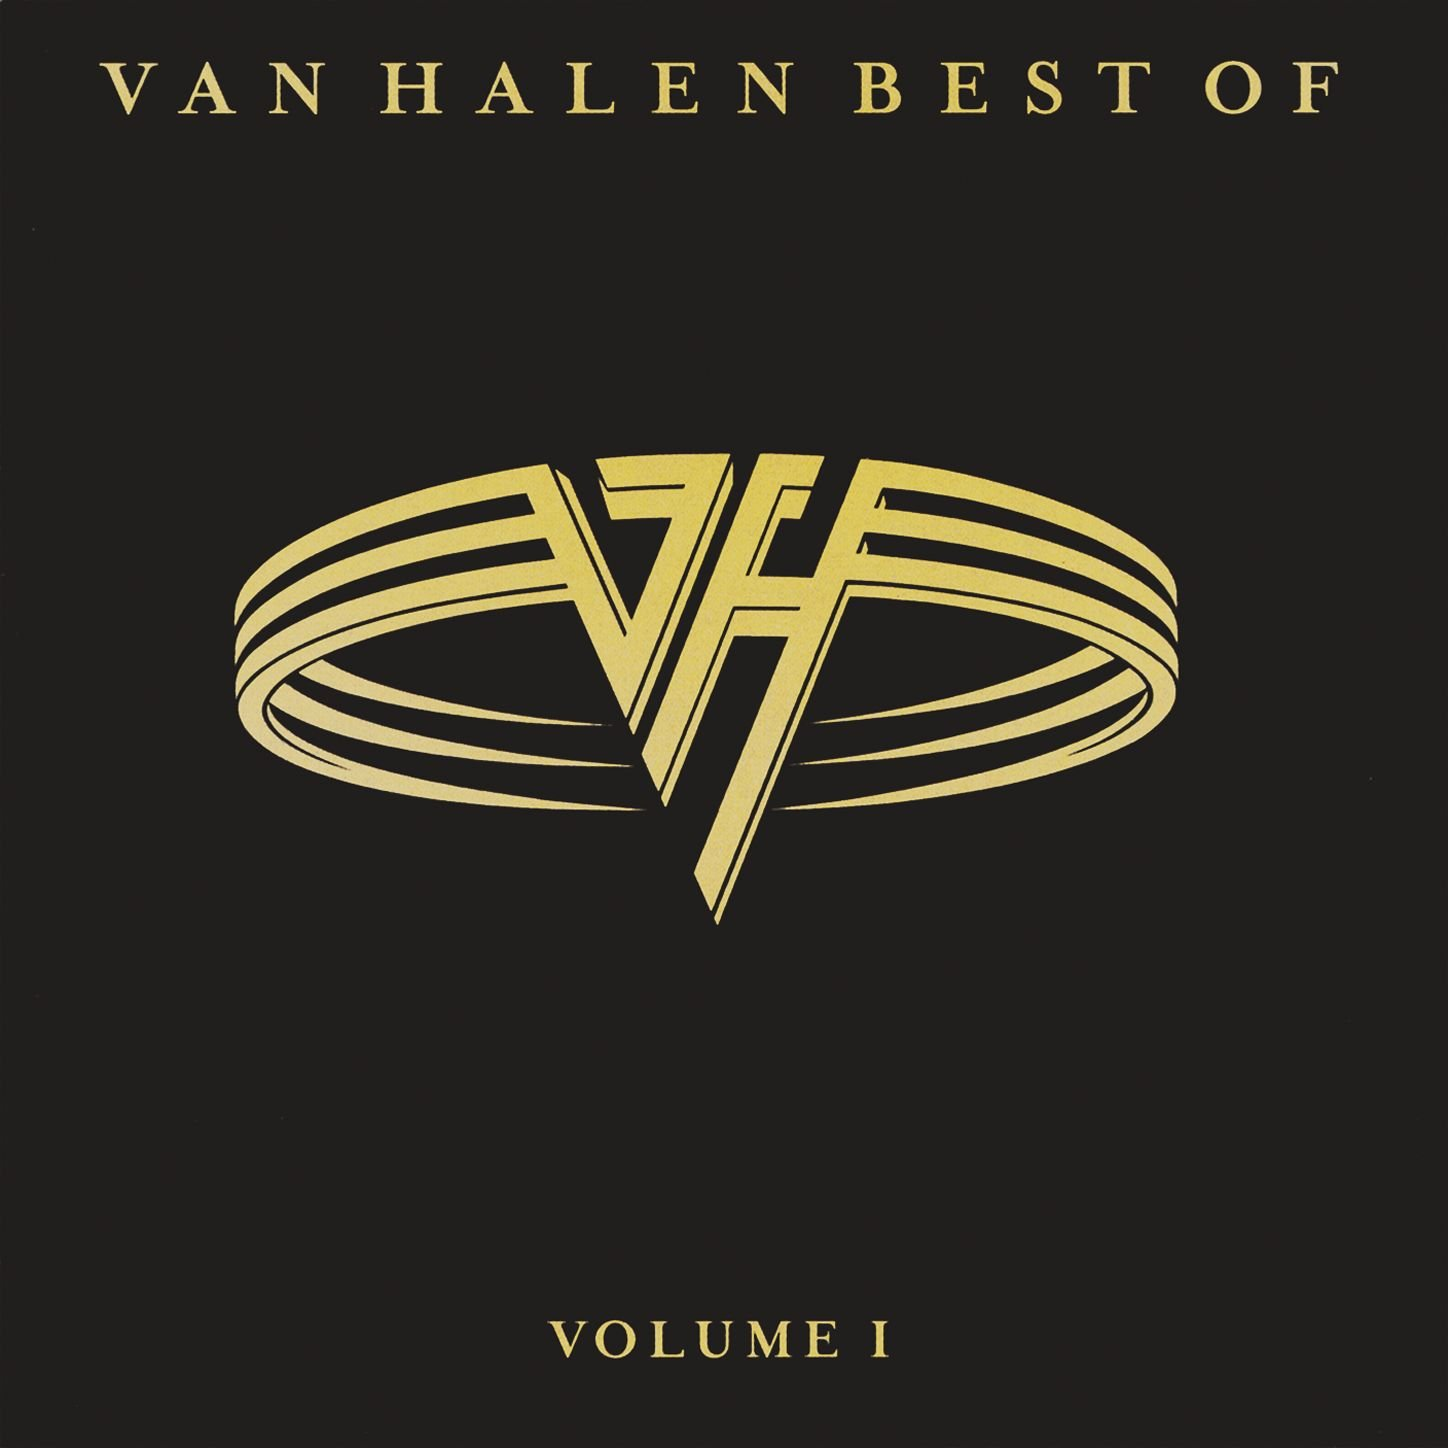 CD : Van Halen - Best of 1 (CD)